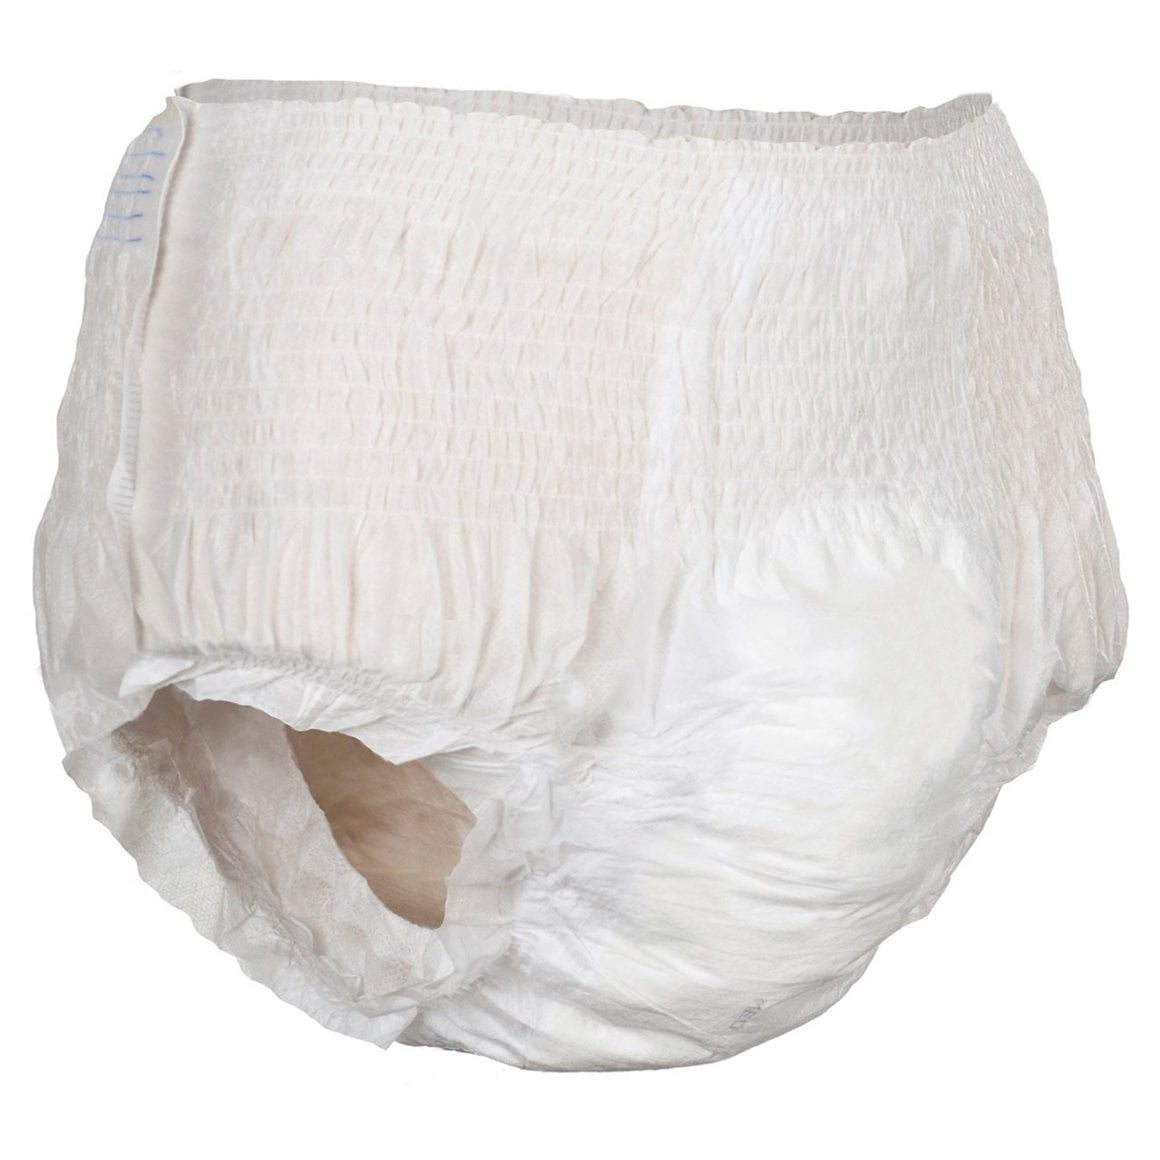 Adult brief diaper